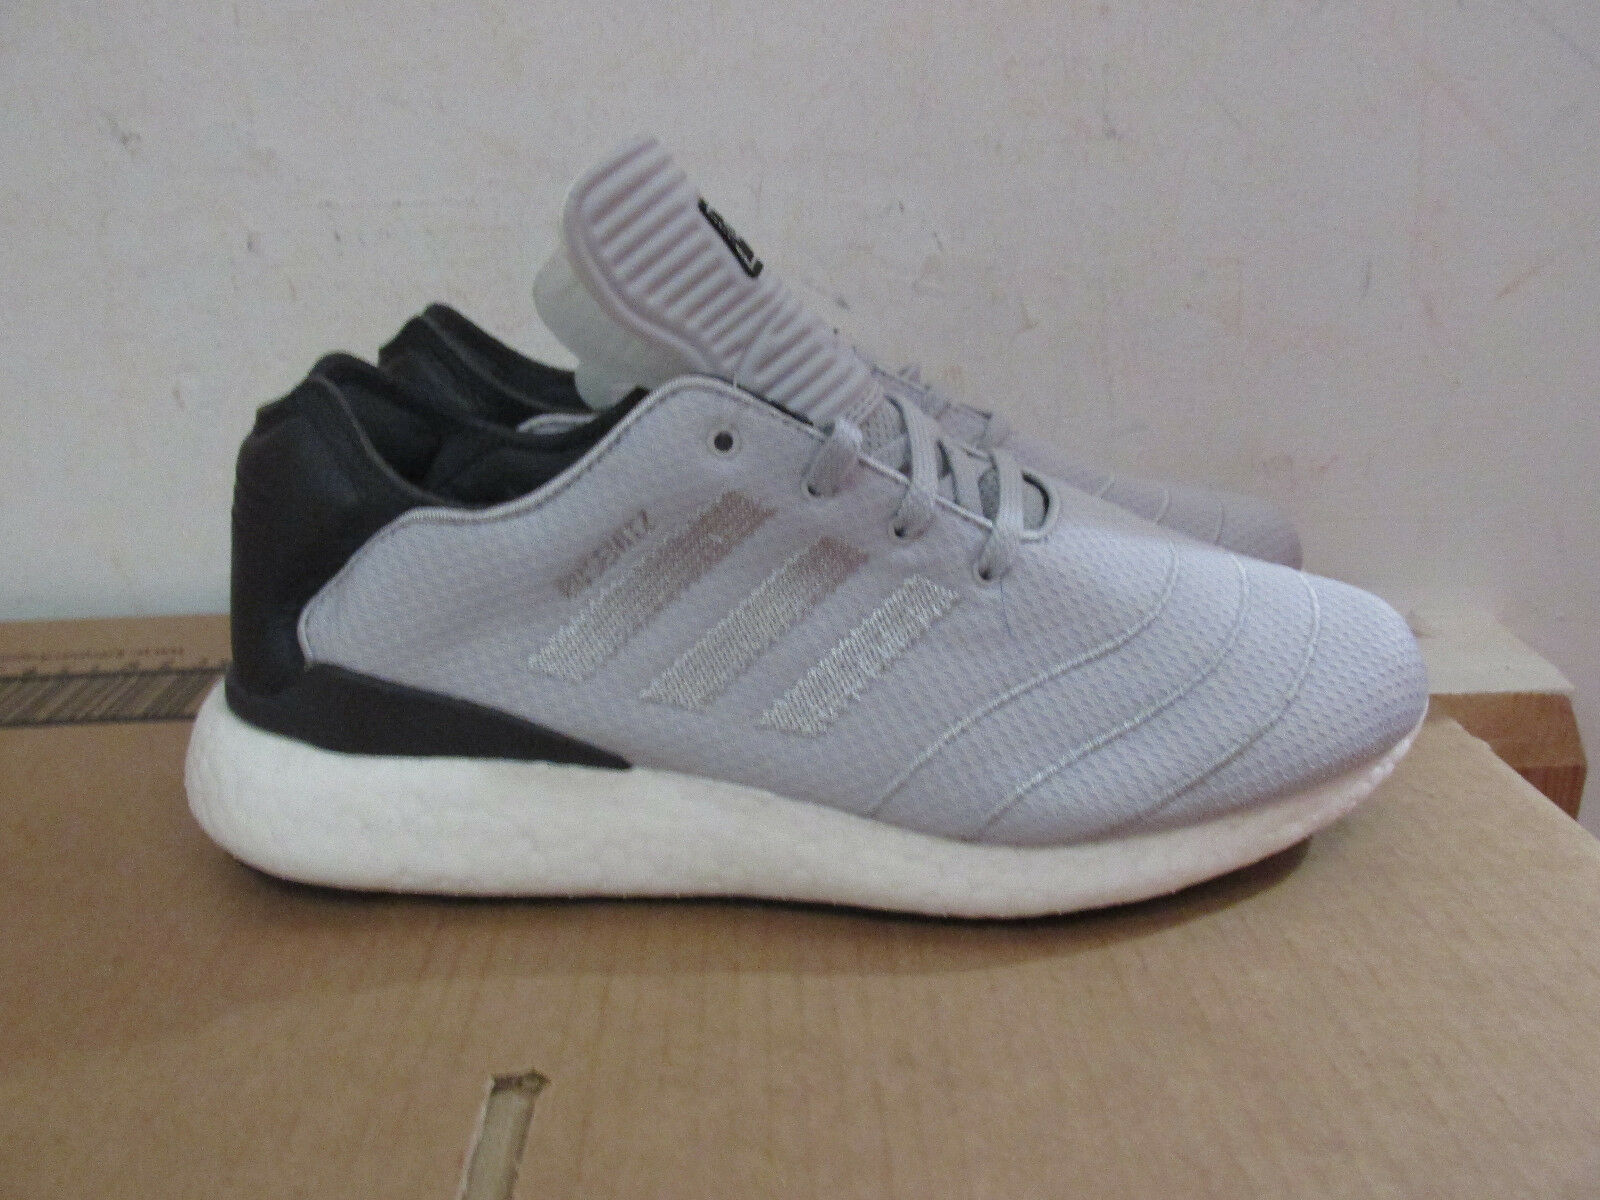 Adidas Busenitz pure boost F37762 mens trainers sneakers SAMPLE